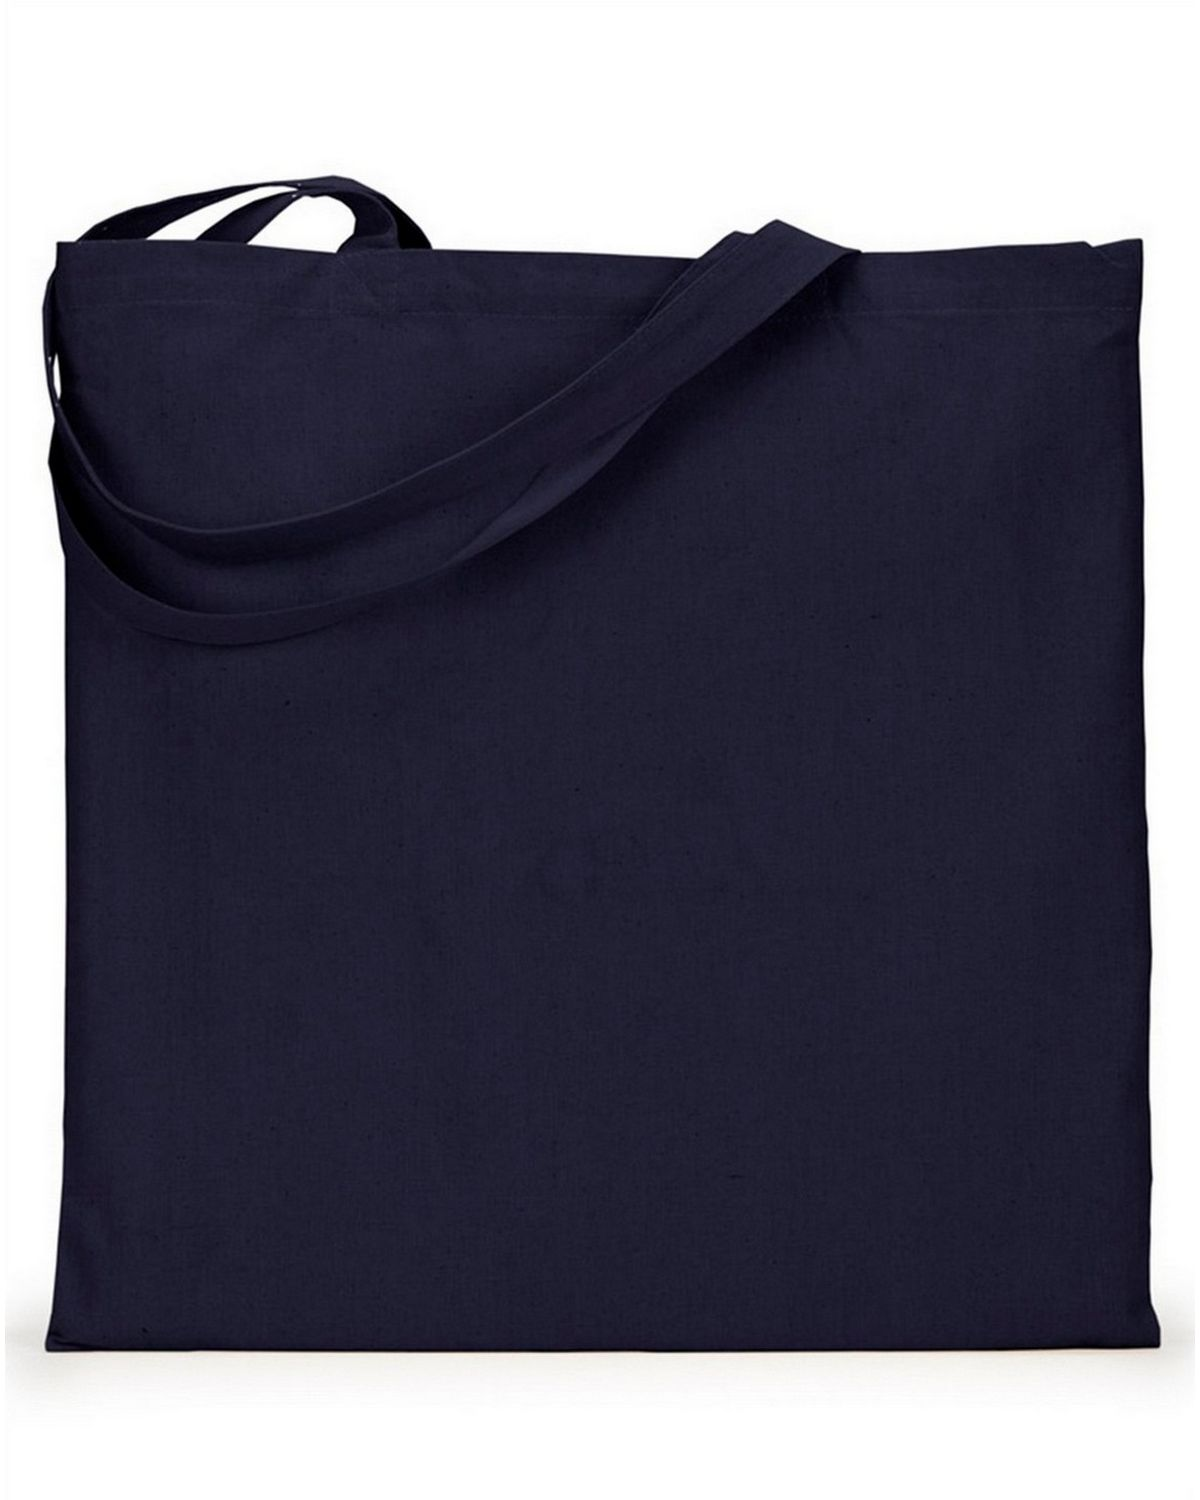 Liberty Bags 8865 Cotton Canvas Tote - Navy - One Size 8865